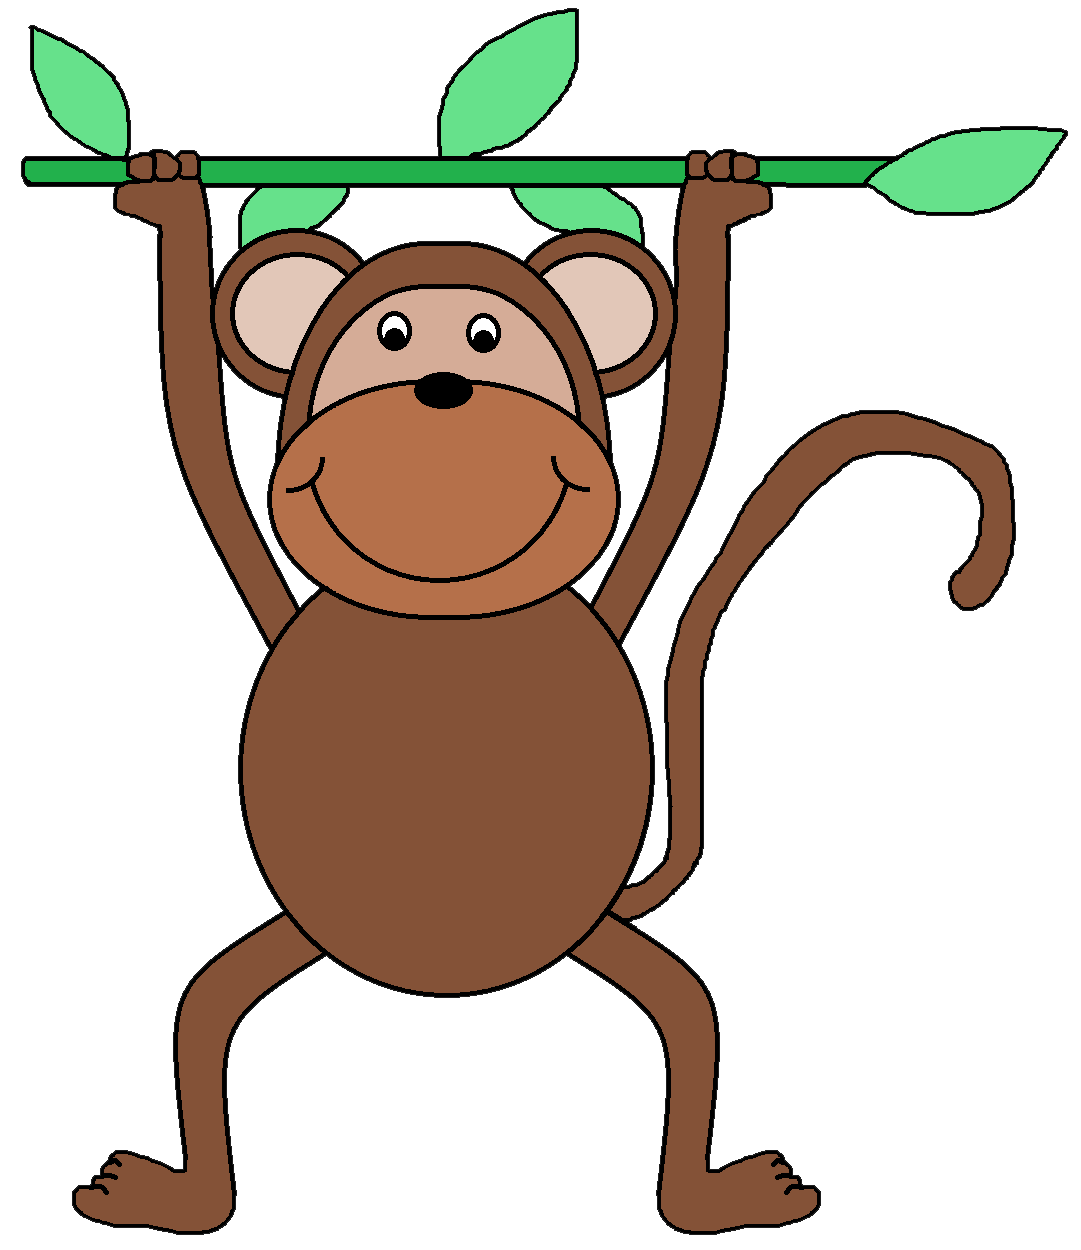 Baboon clipart brown monkey Monkey Clipart for website ClipartMonk